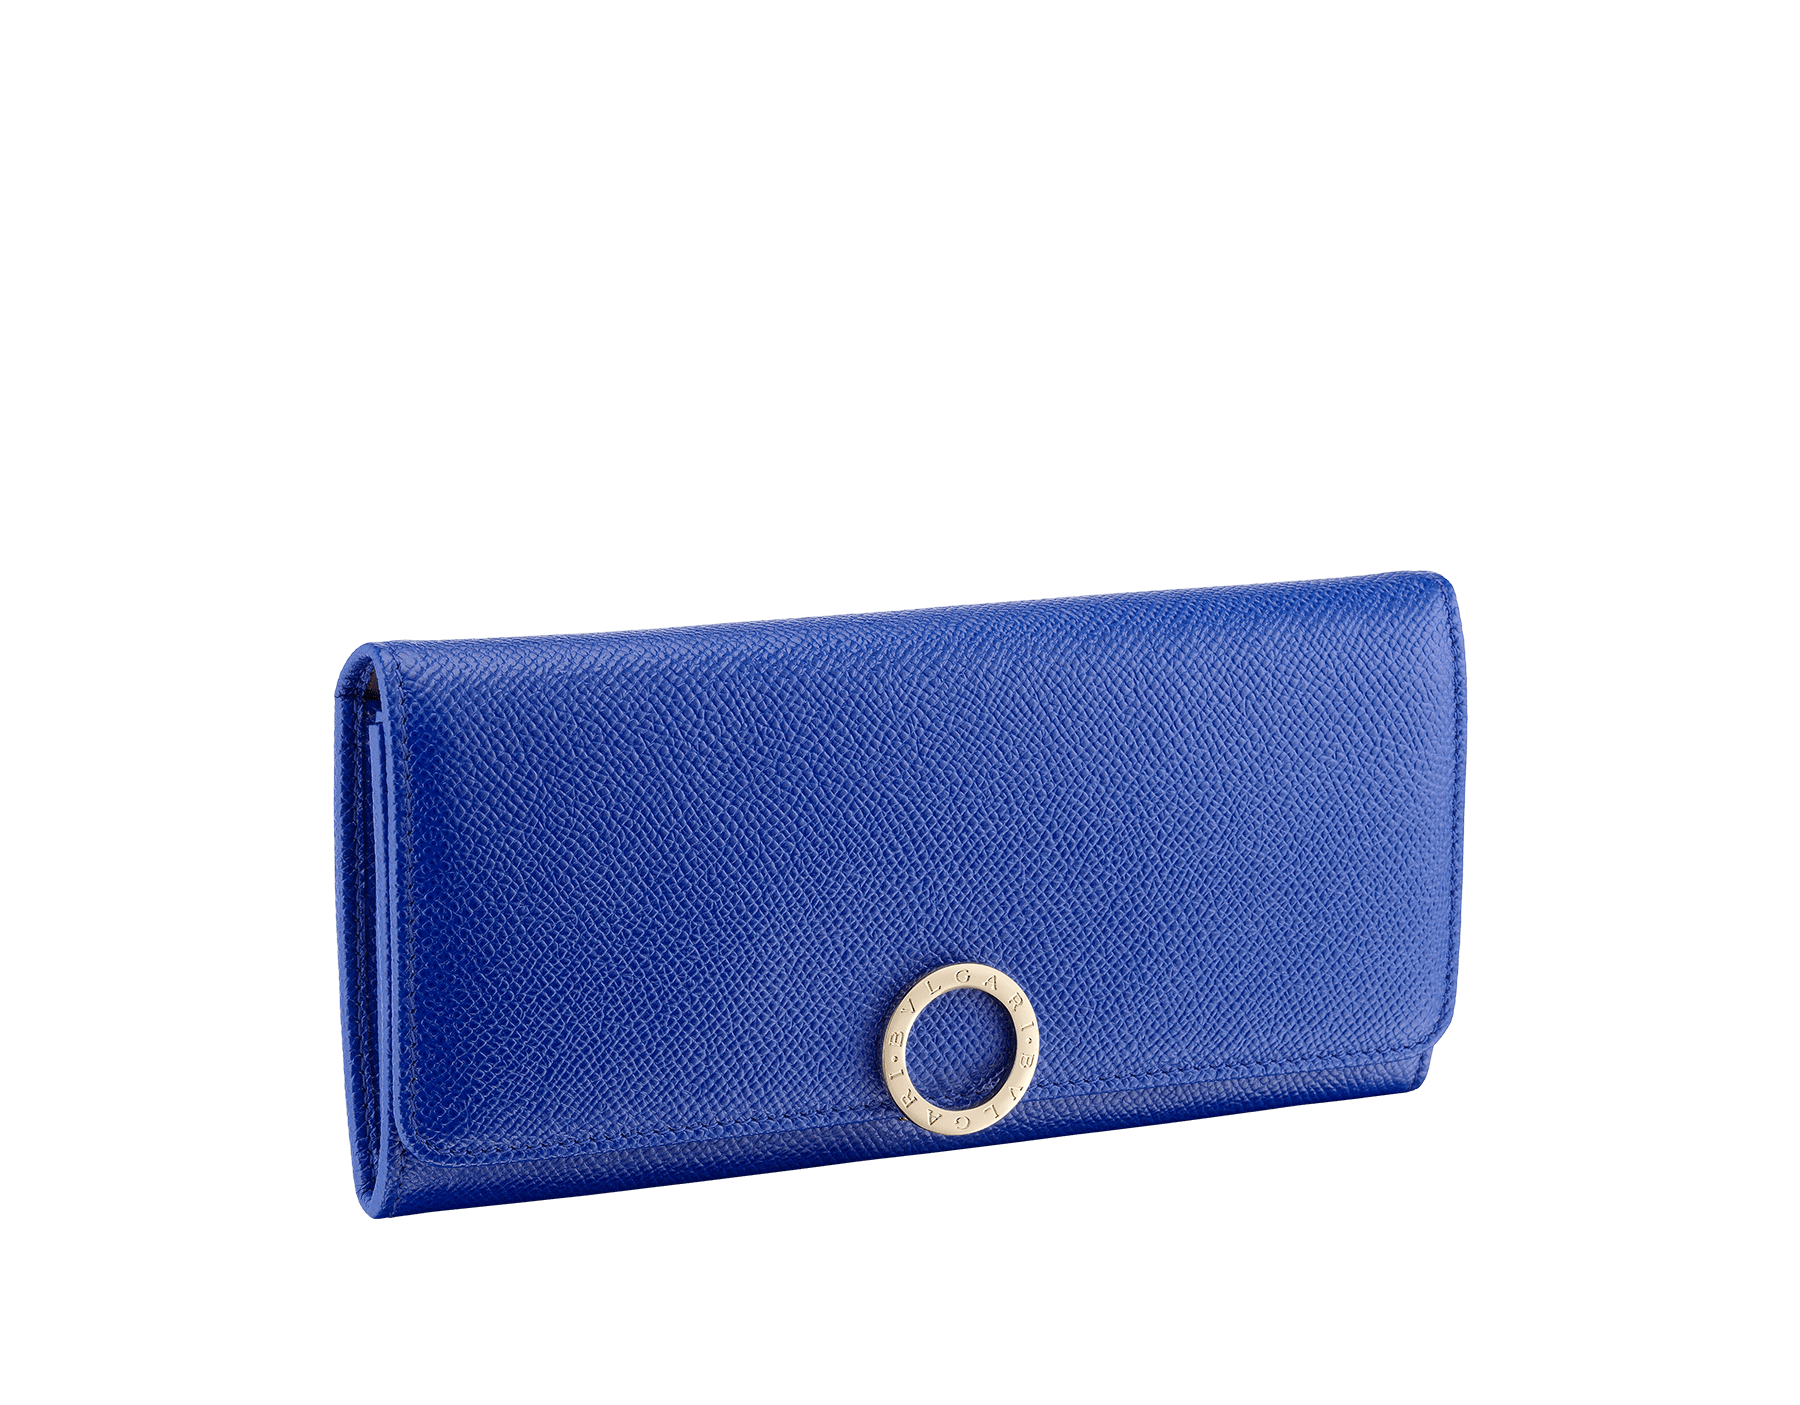 BVLGARI BVLGARI wallet pochette in cobalt tourmaline grain calf leather and aster amethyst nappa leather. Iconic logo closure clip in light gold plated brass 287299 image 1